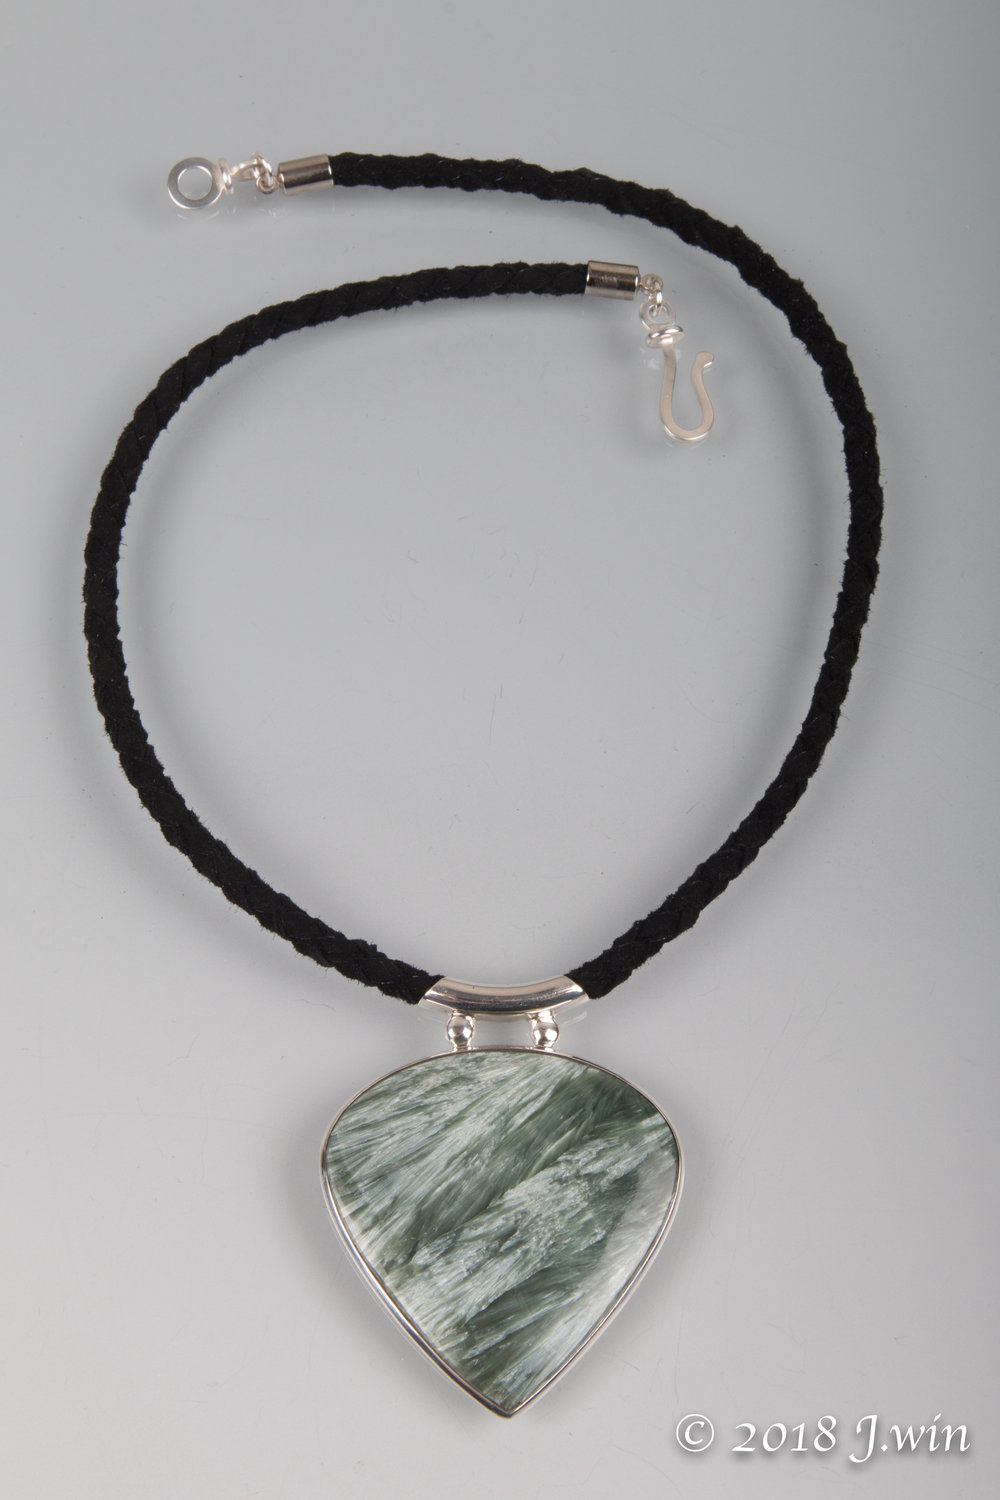 Green kyanite pendant necklace